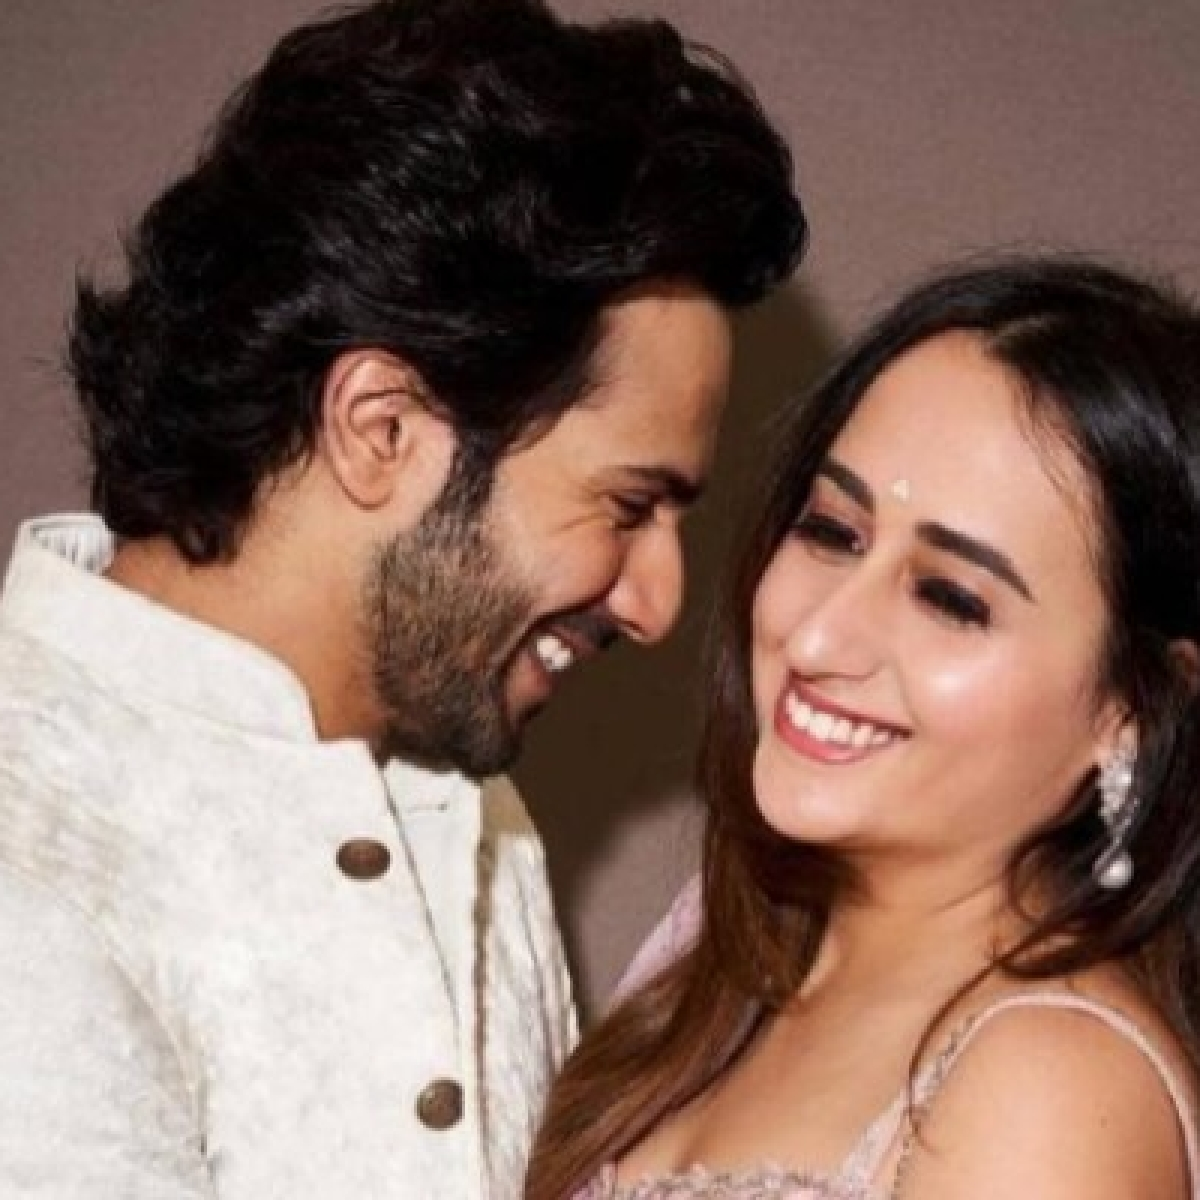 Varun Dhawan puts rumours of 'Roka' with Natasha Dalal to rest, clarifies it was birthday celebrations